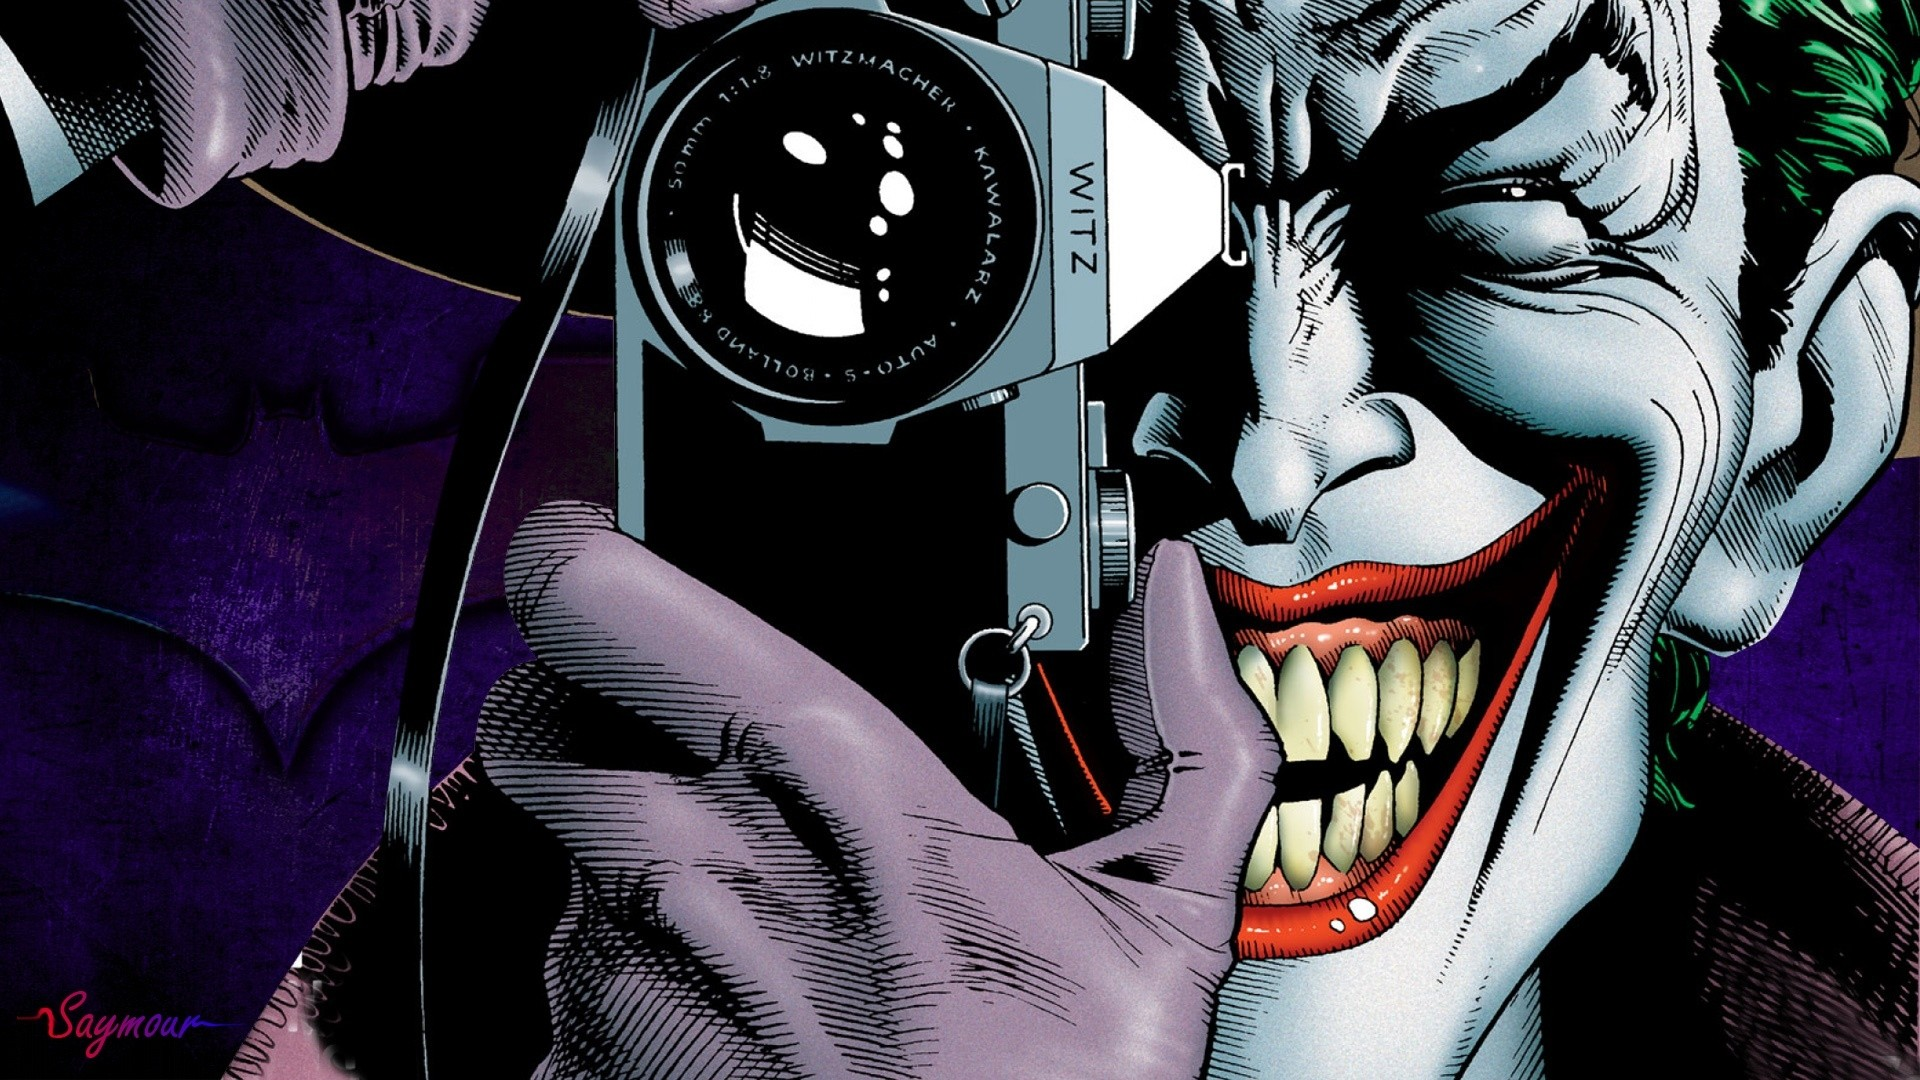 Res: 1920x1080, 49 Widescreen HQ Definition Wallpapers of Joker for Windows and